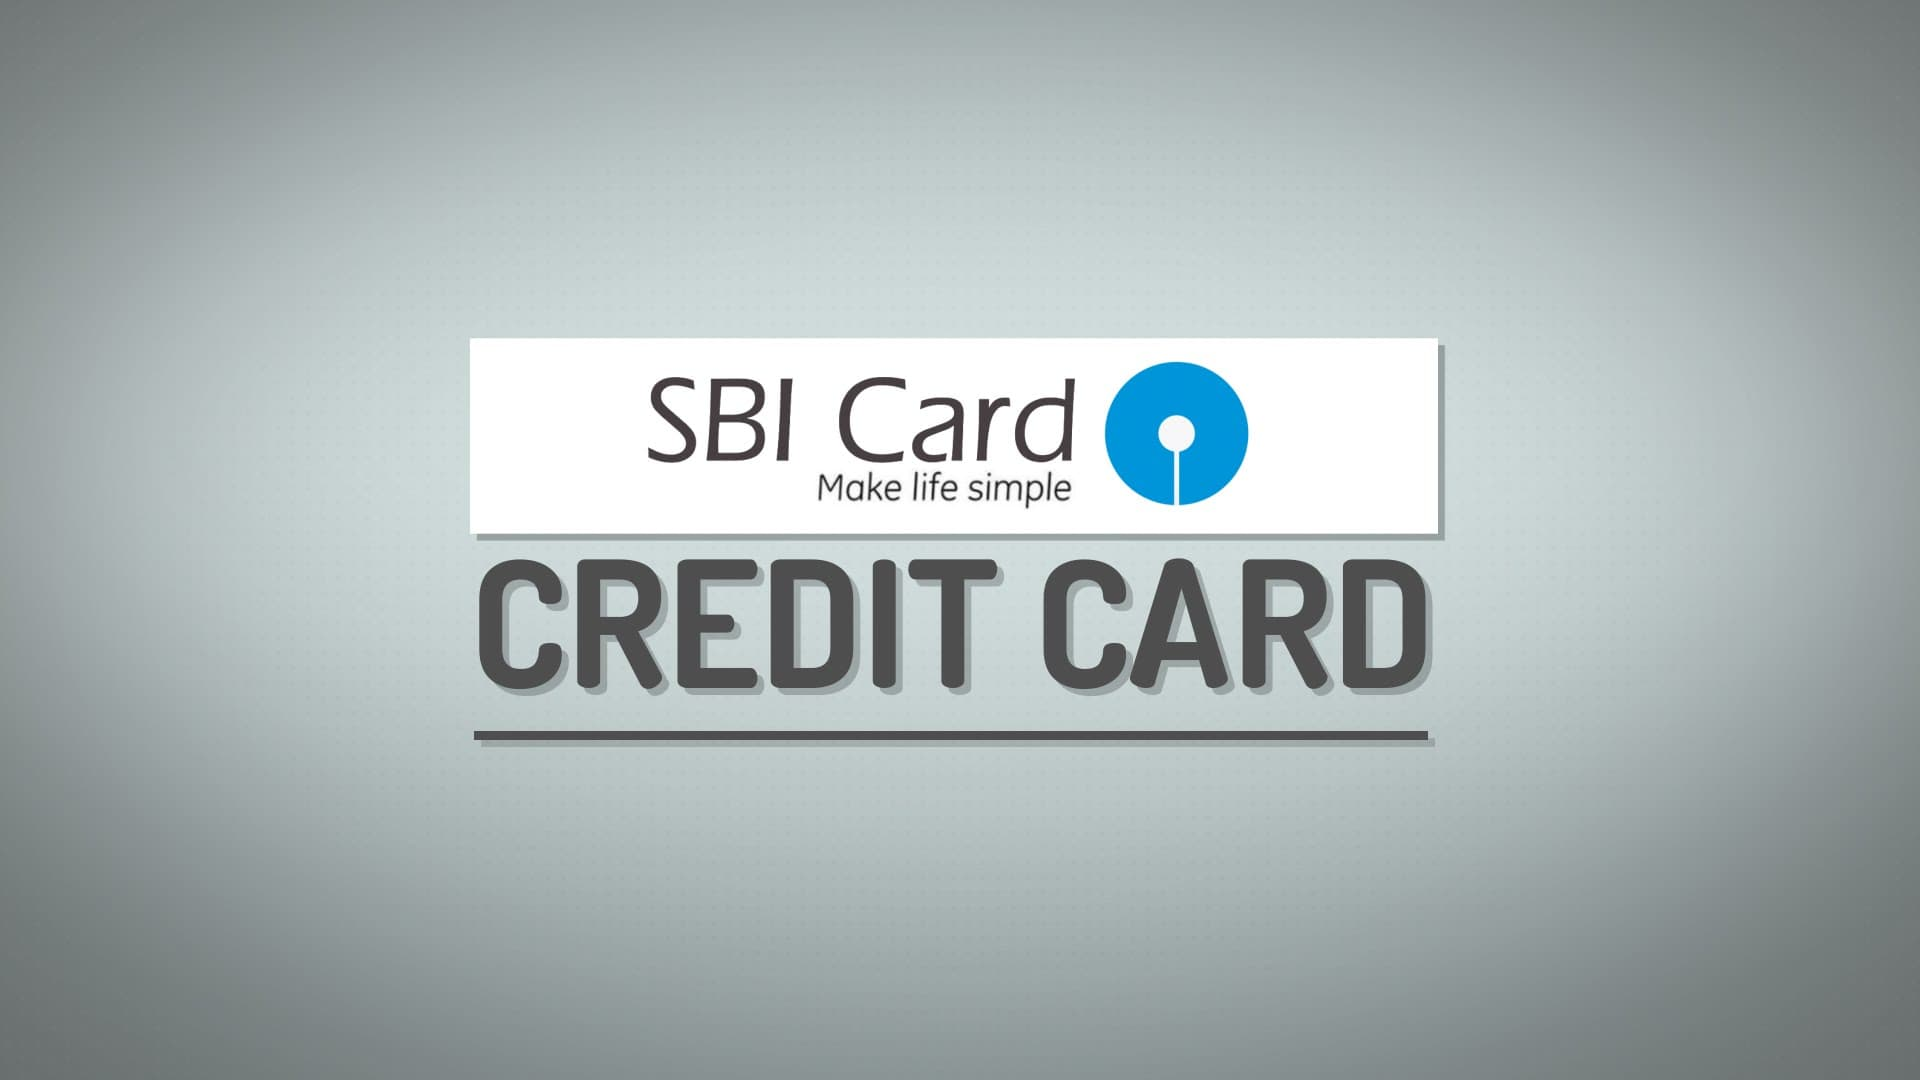 SBI Credit Cards – Types, Features, Benefits and How to Apply?